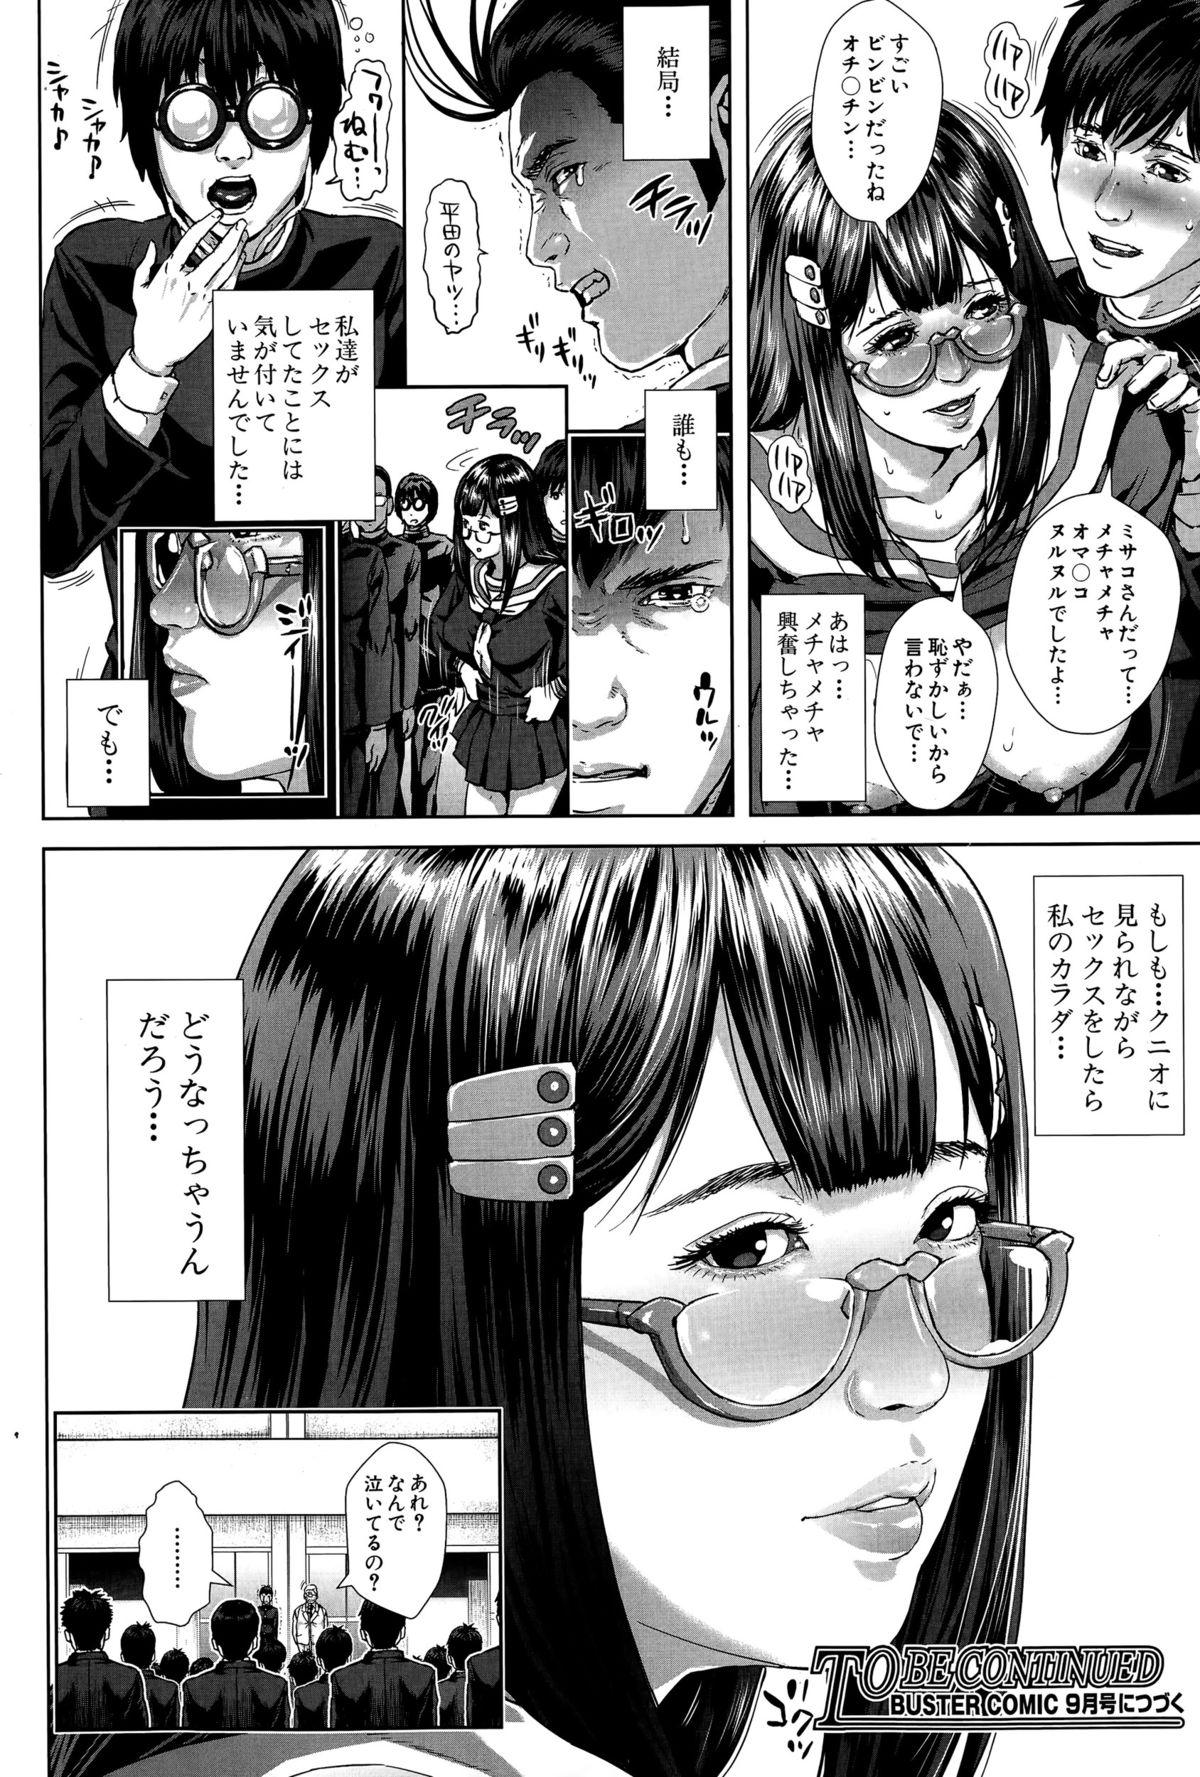 BUSTER COMIC 2015-07 159